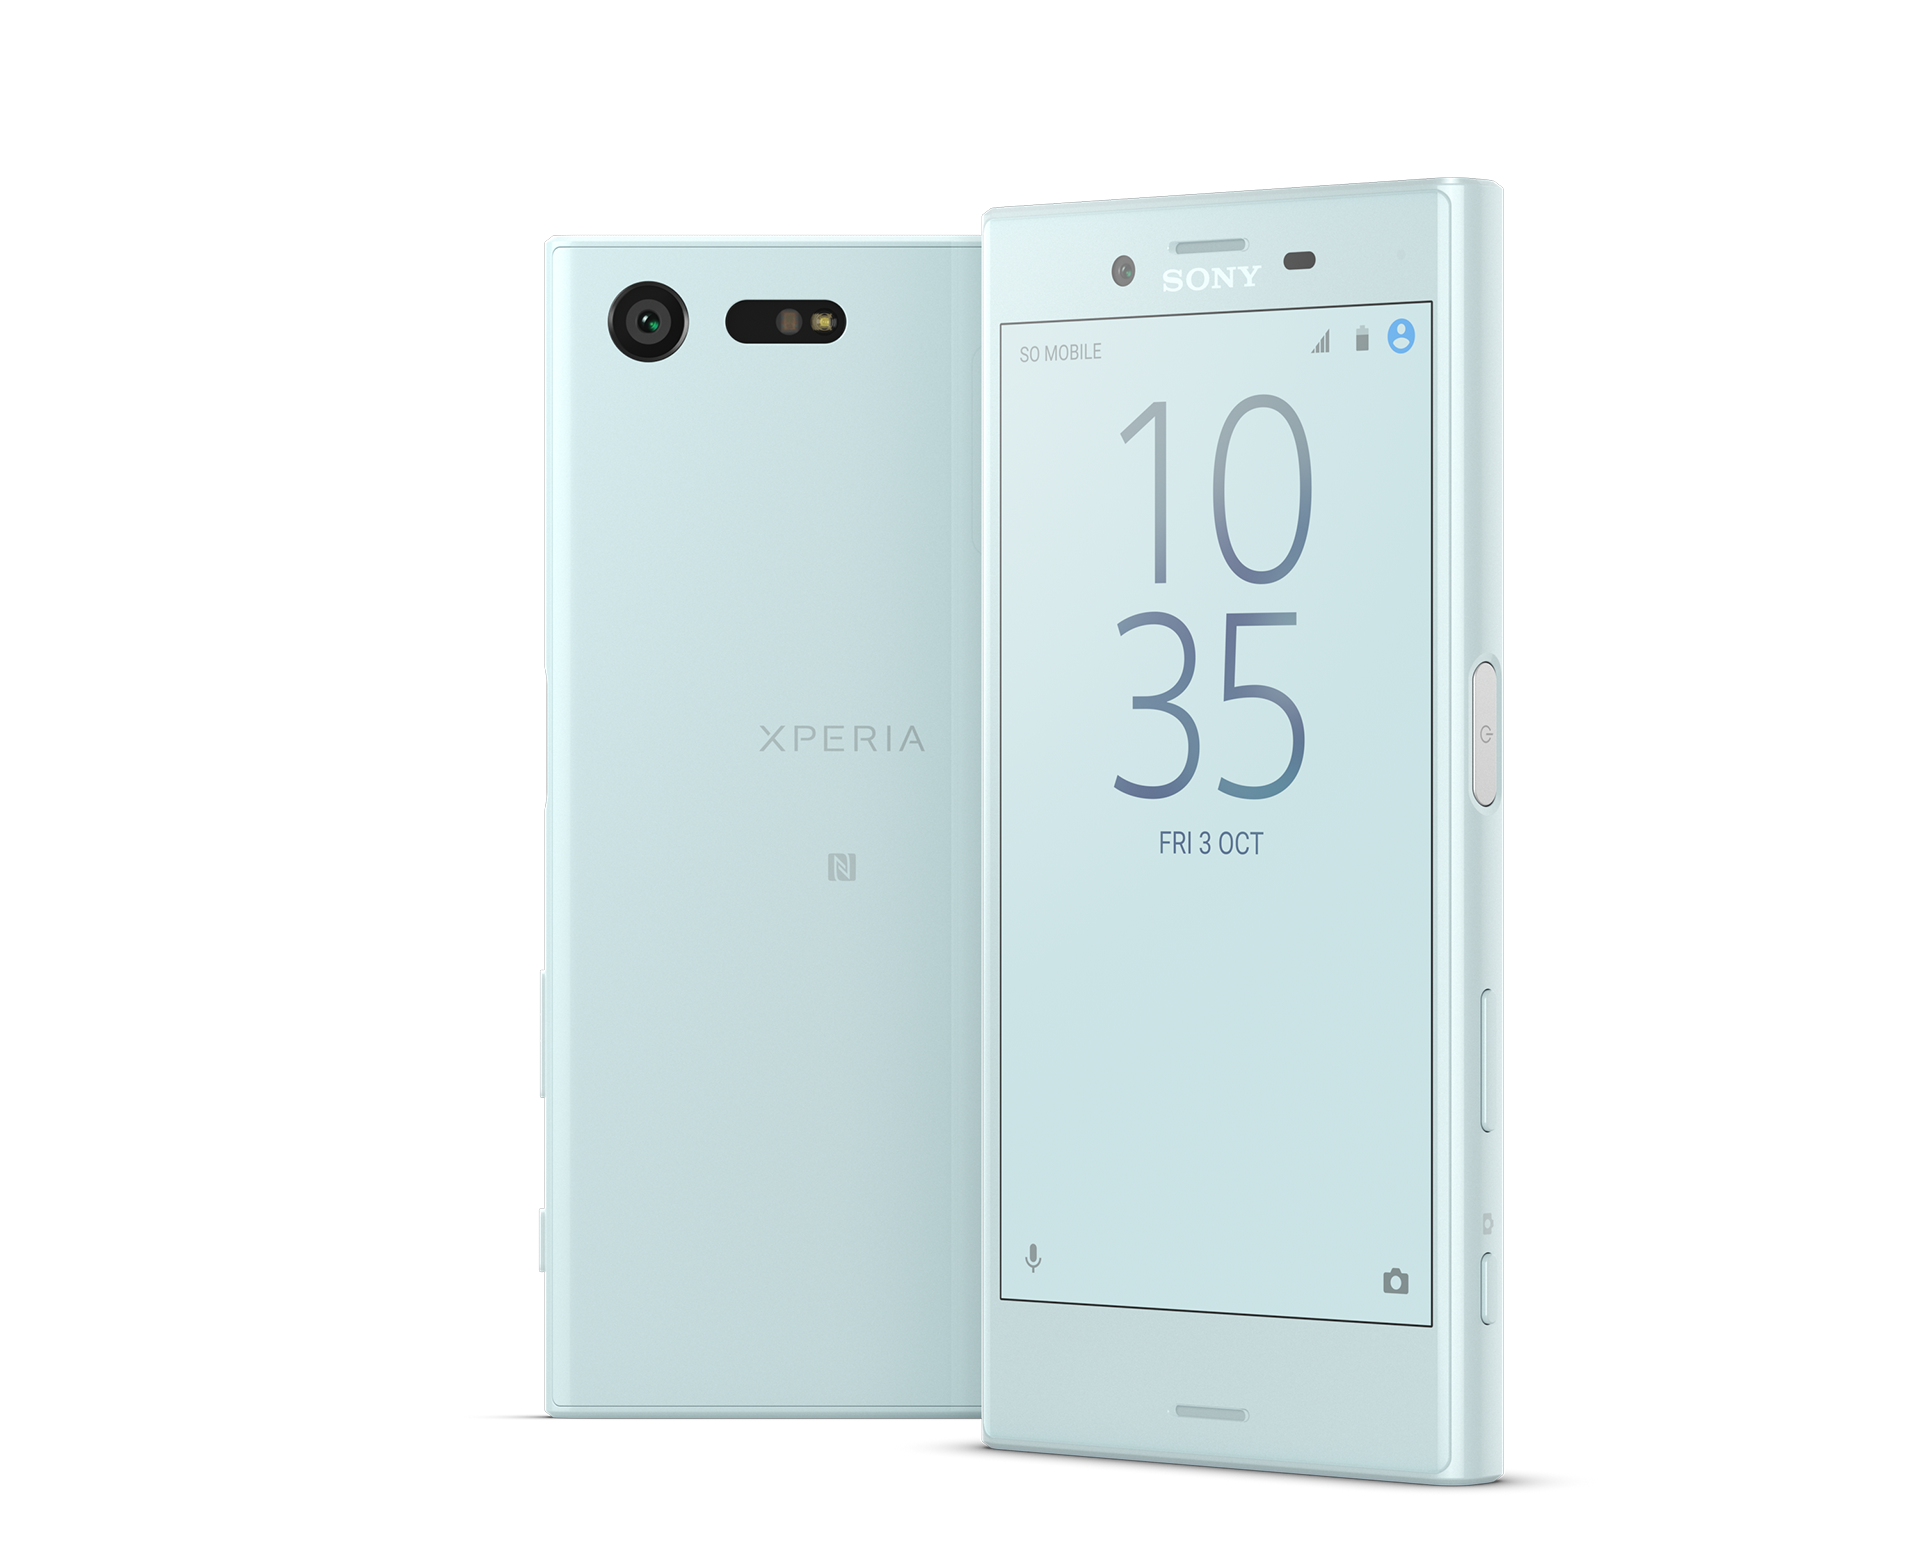 sony s xperia xz and x compact smartphones bank on photo. Black Bedroom Furniture Sets. Home Design Ideas